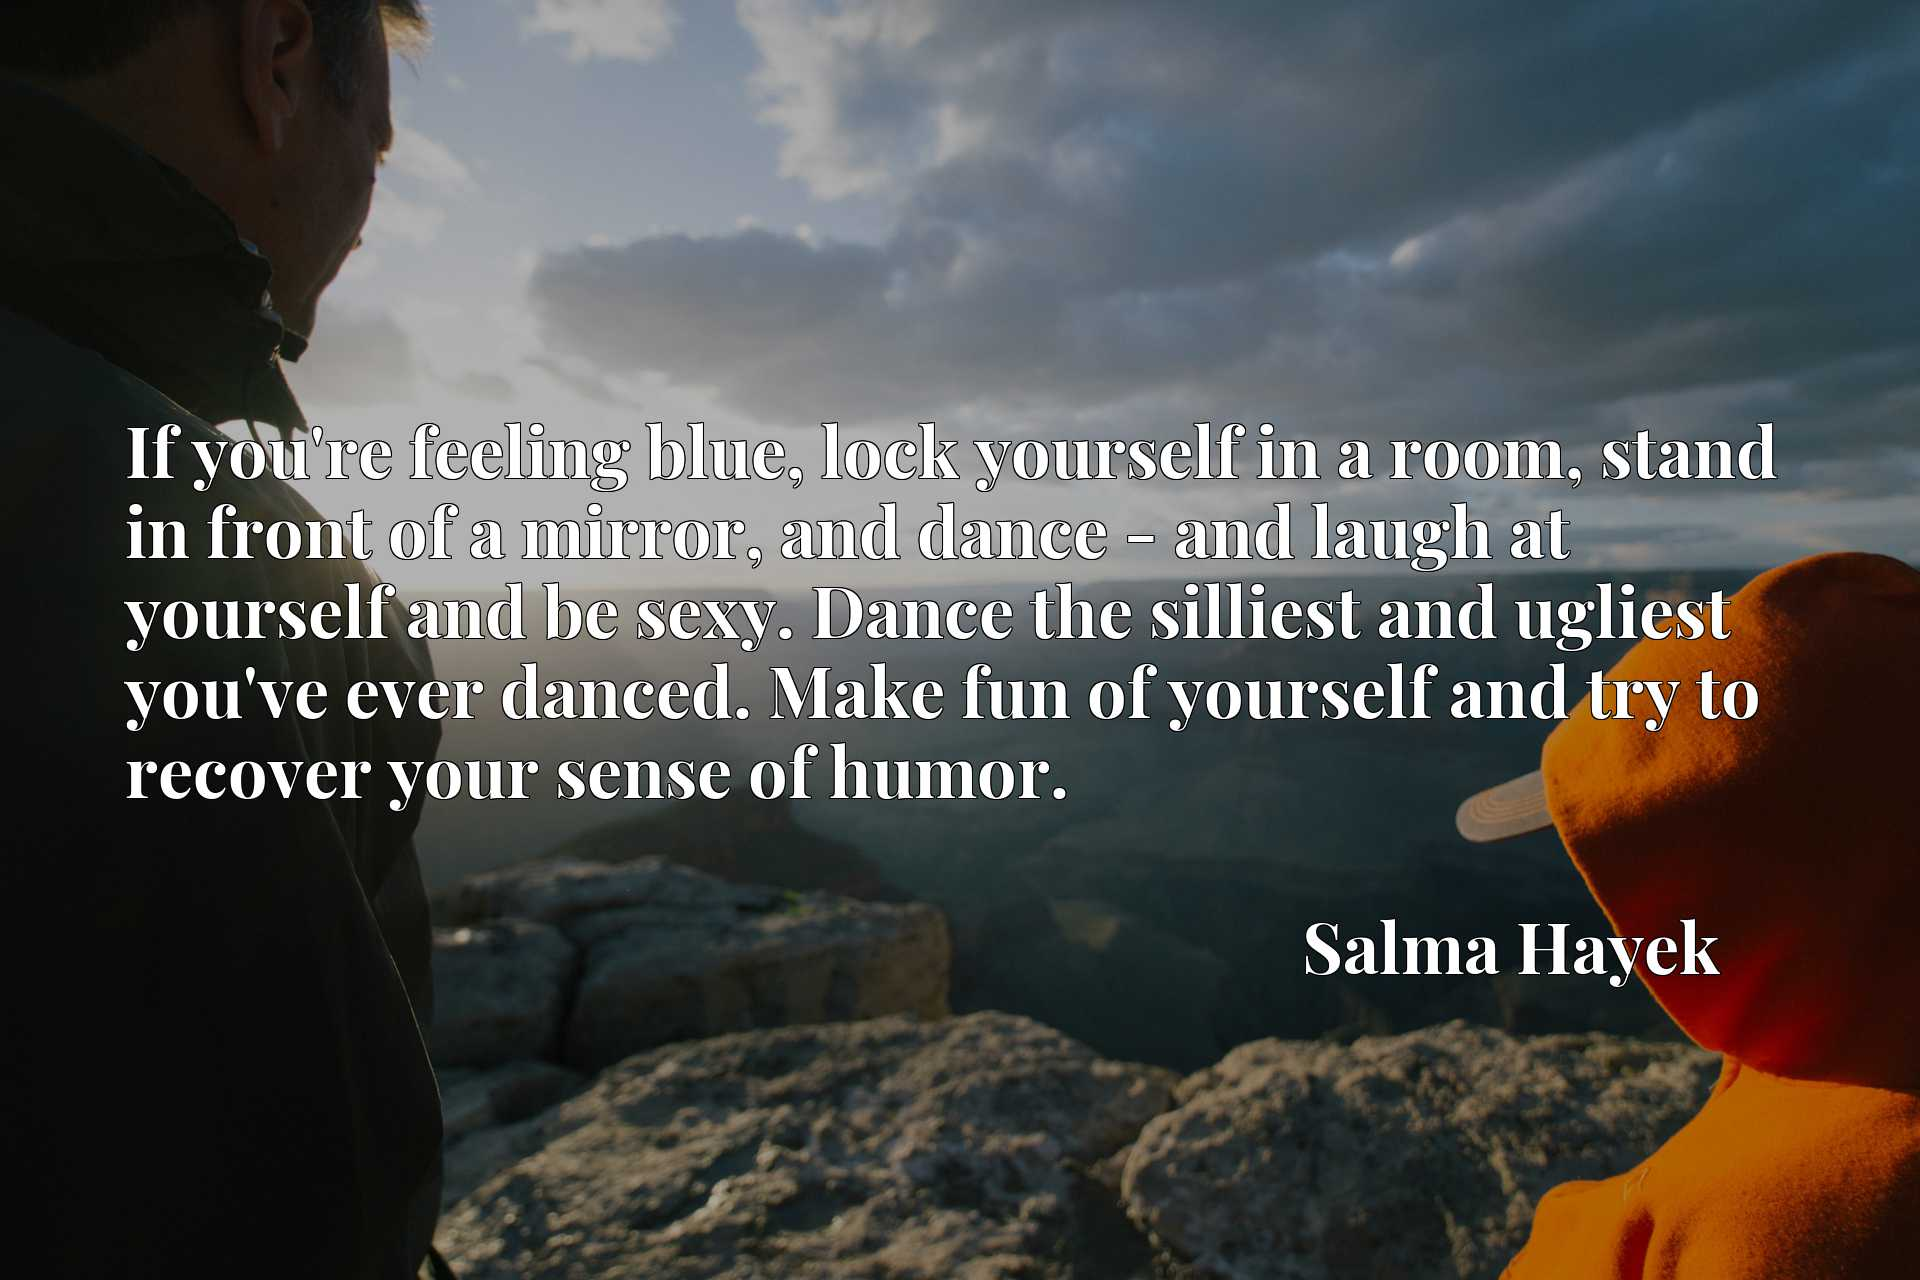 If you're feeling blue, lock yourself in a room, stand in front of a mirror, and dance - and laugh at yourself and be sexy. Dance the silliest and ugliest you've ever danced. Make fun of yourself and try to recover your sense of humor.